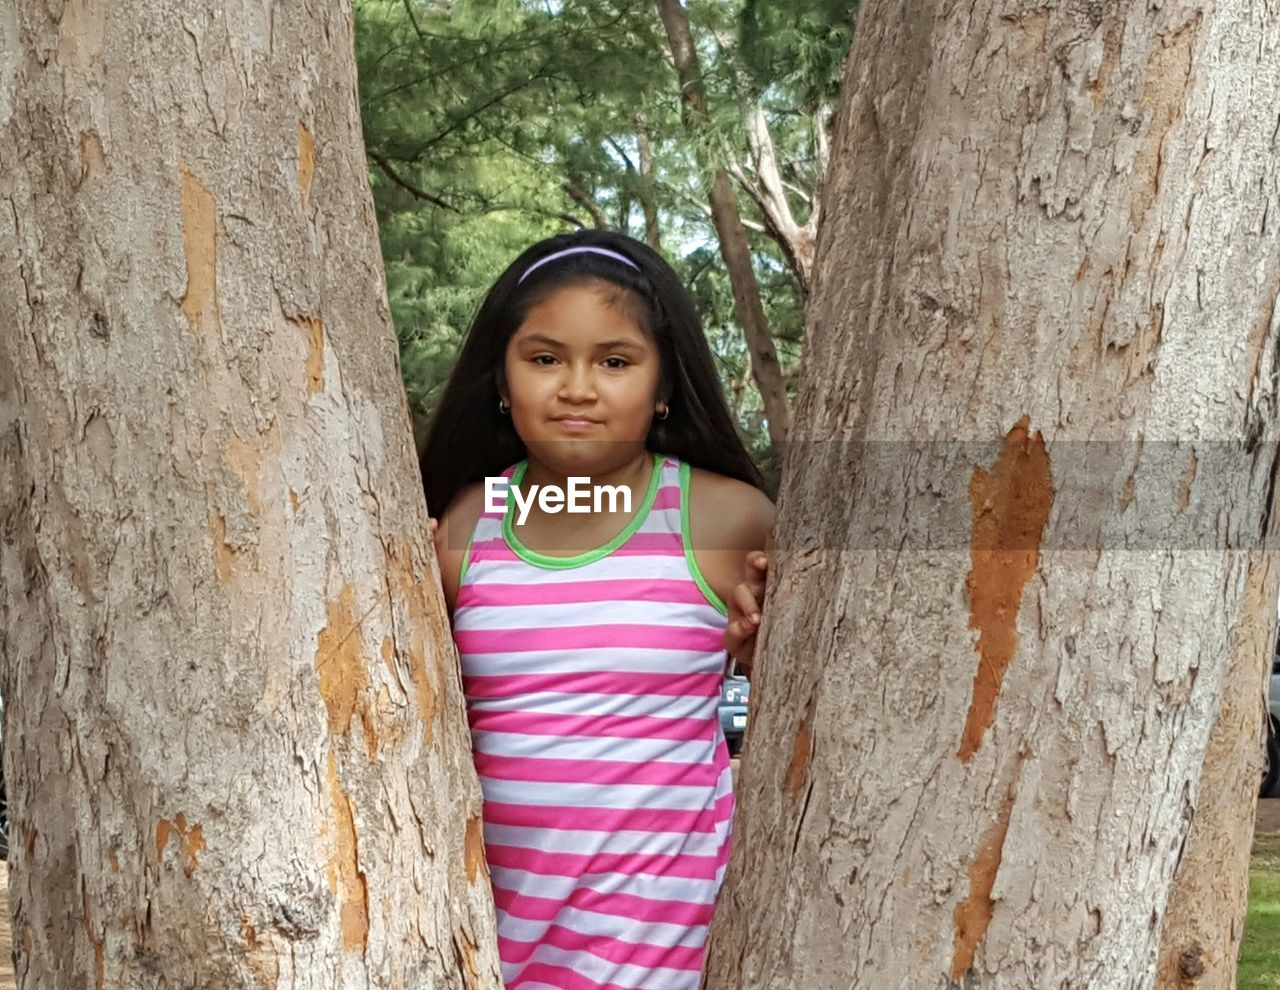 Portrait Of Girl Standing Against Tree Trunks At Park